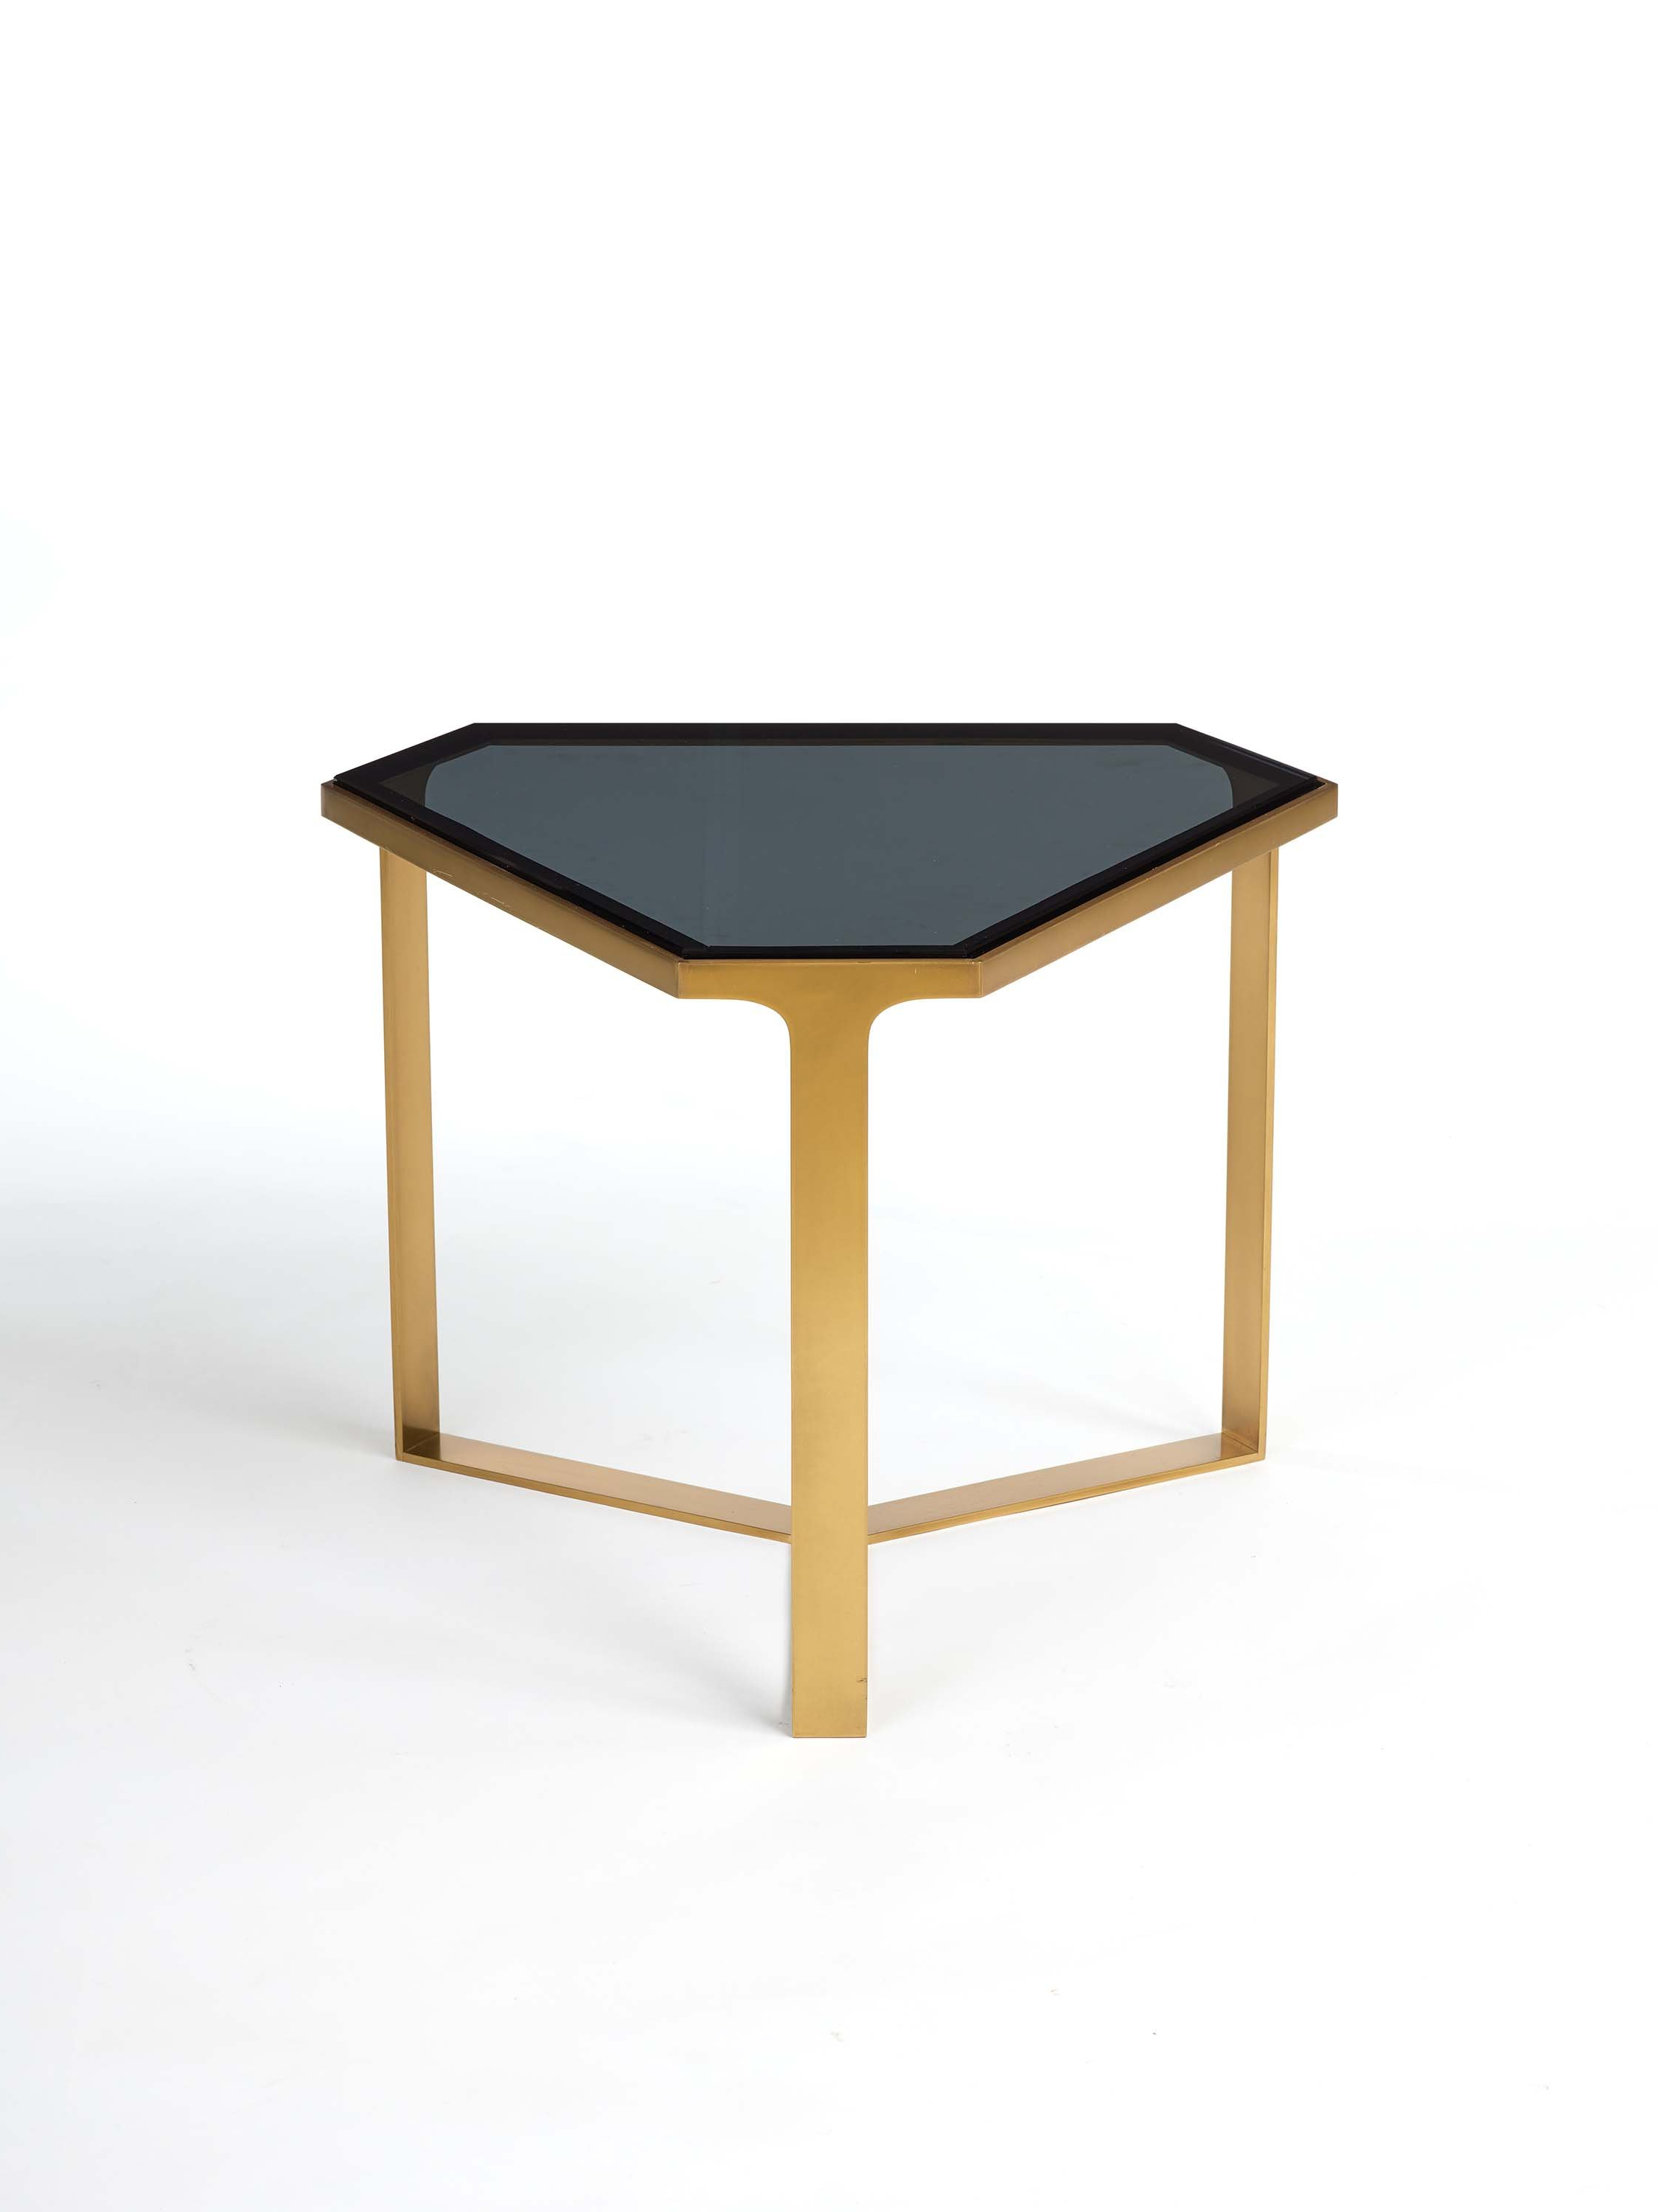 Popular Donghia Forma Table With Satin Brass Base And Gray Glass Top For Throughout Forma Cocktail Tables (Gallery 3 of 20)